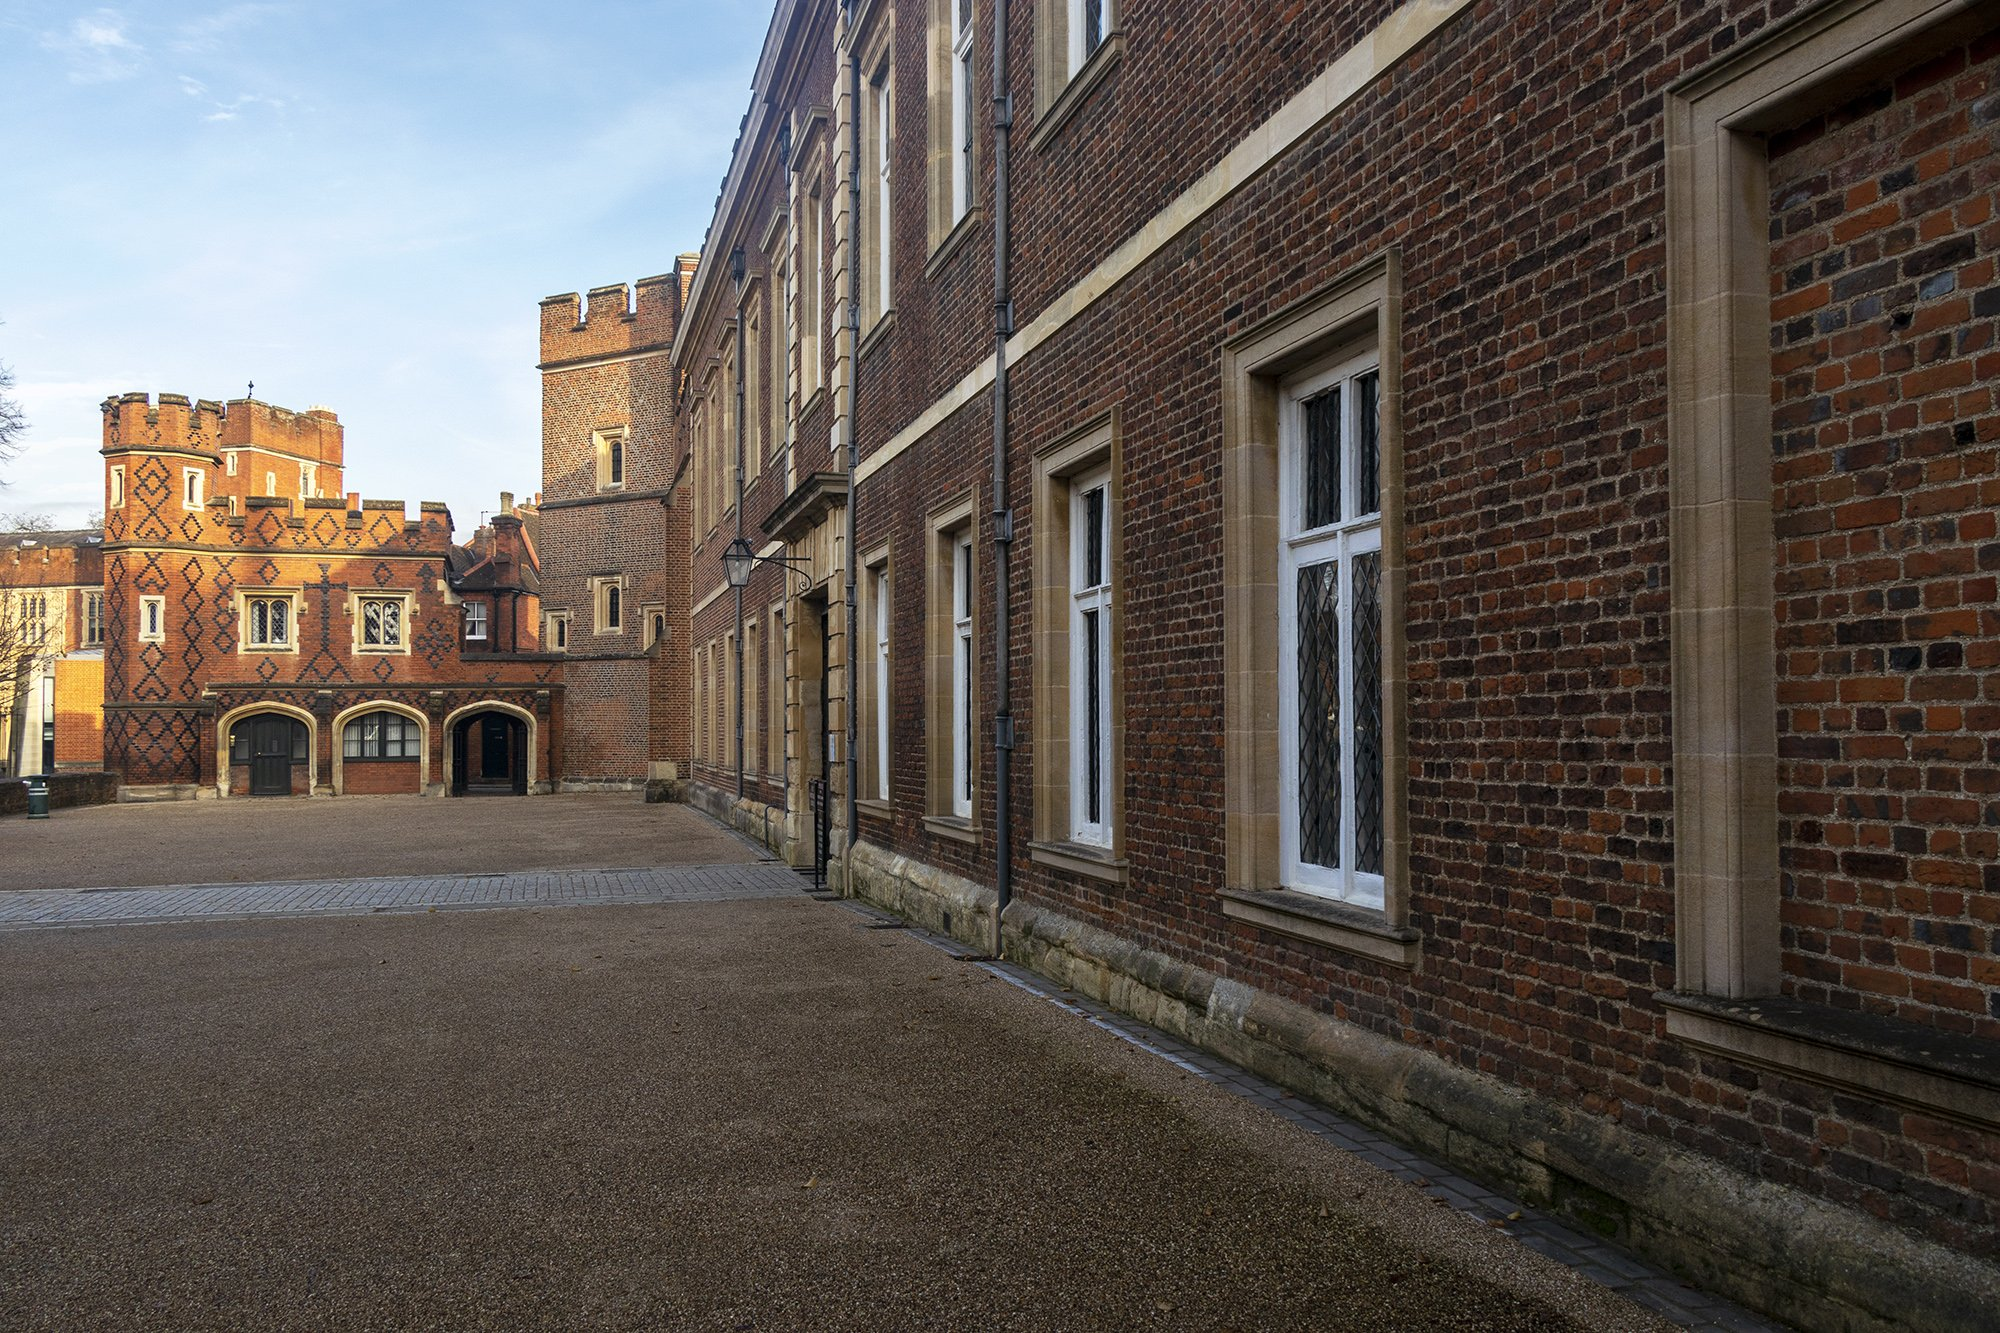 Upper School Eton College